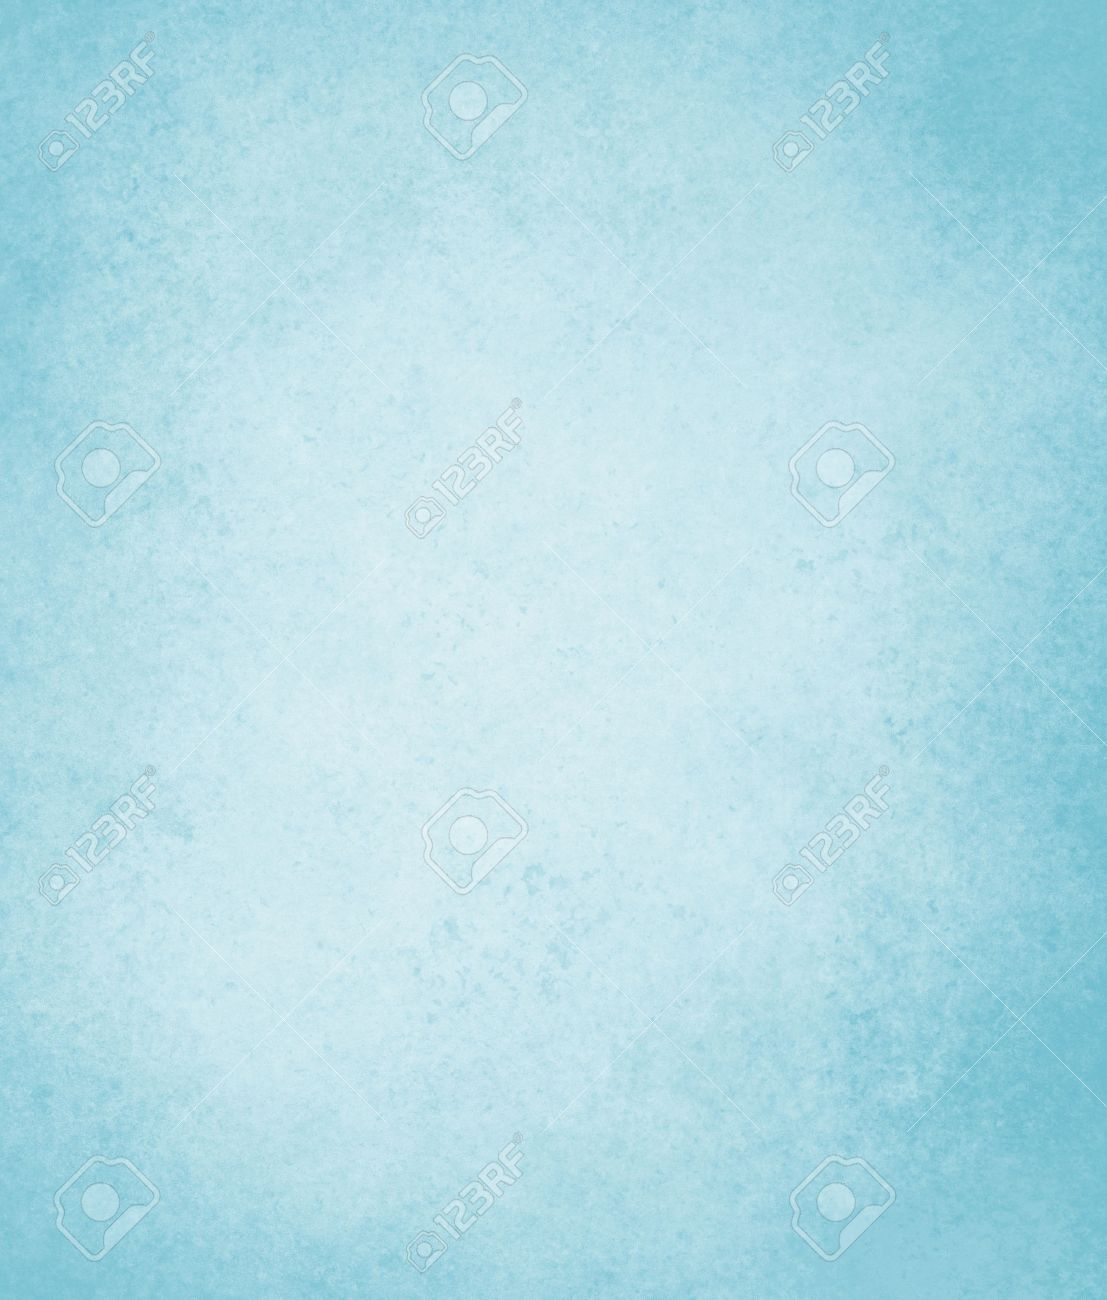 Light Teal Plain Background pale sky blue background with